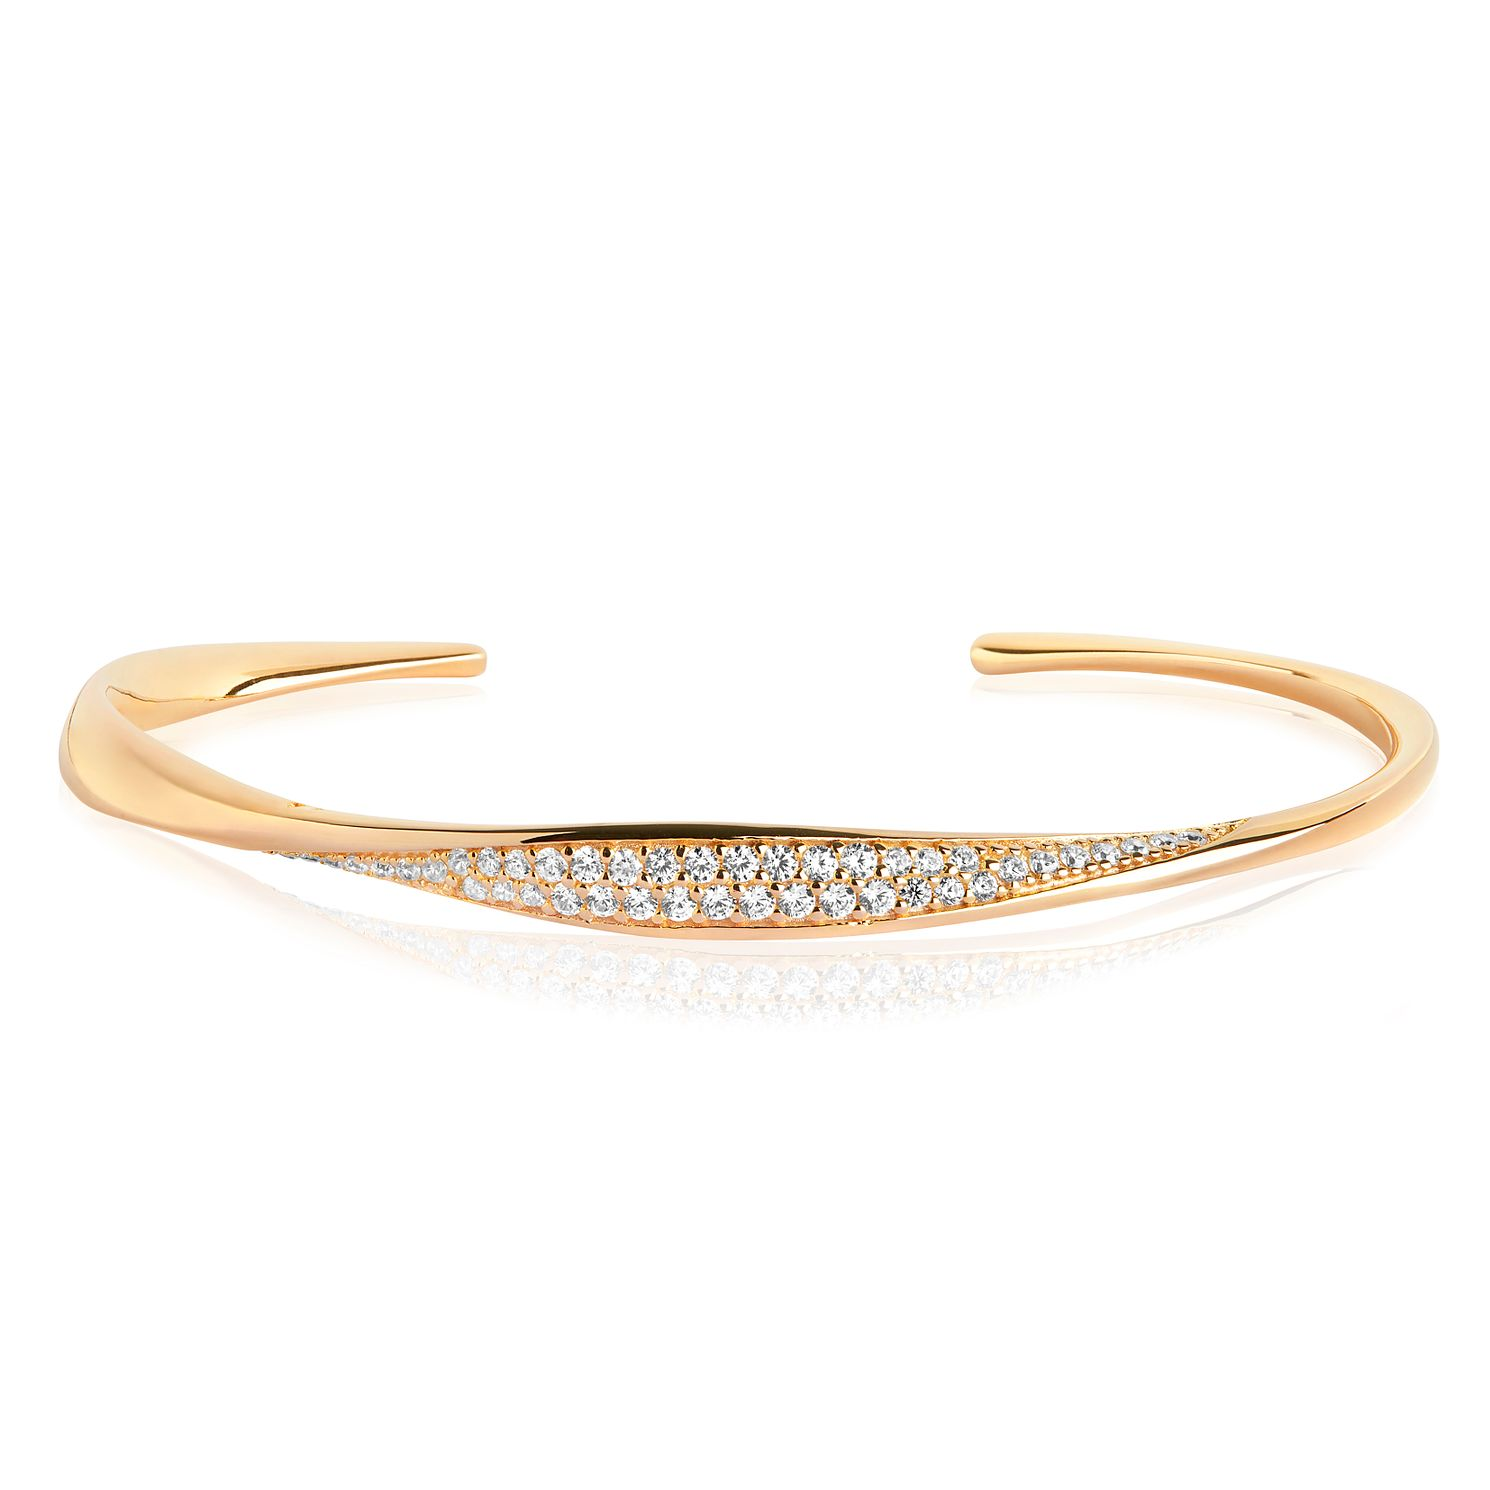 Sif Jakobs Cetara Gold Plated Zirconia Set Bangle - Product number 4422880